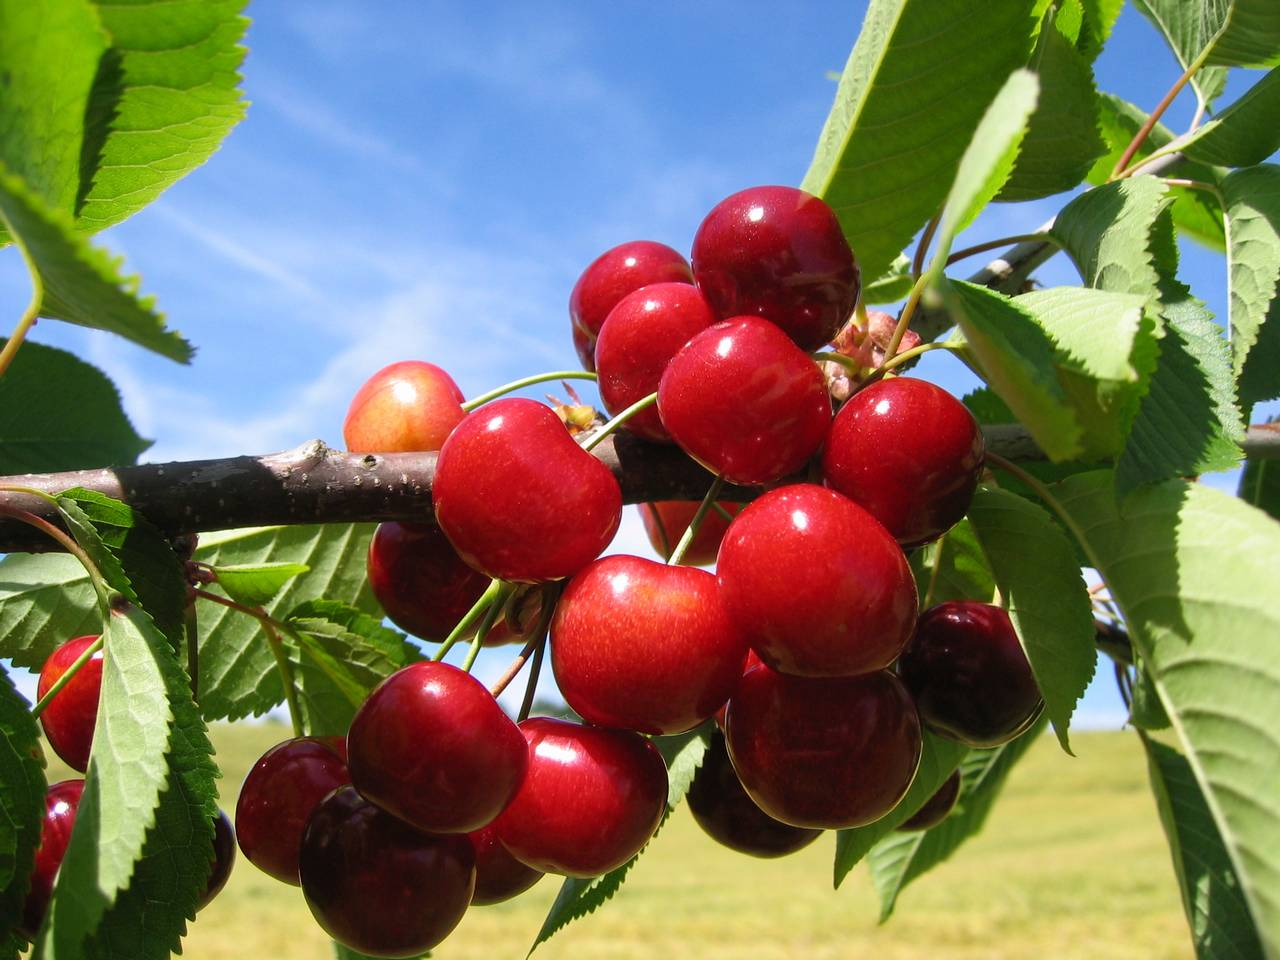 Turkey expects an 8.5% rise in its cherry production in 2020/21